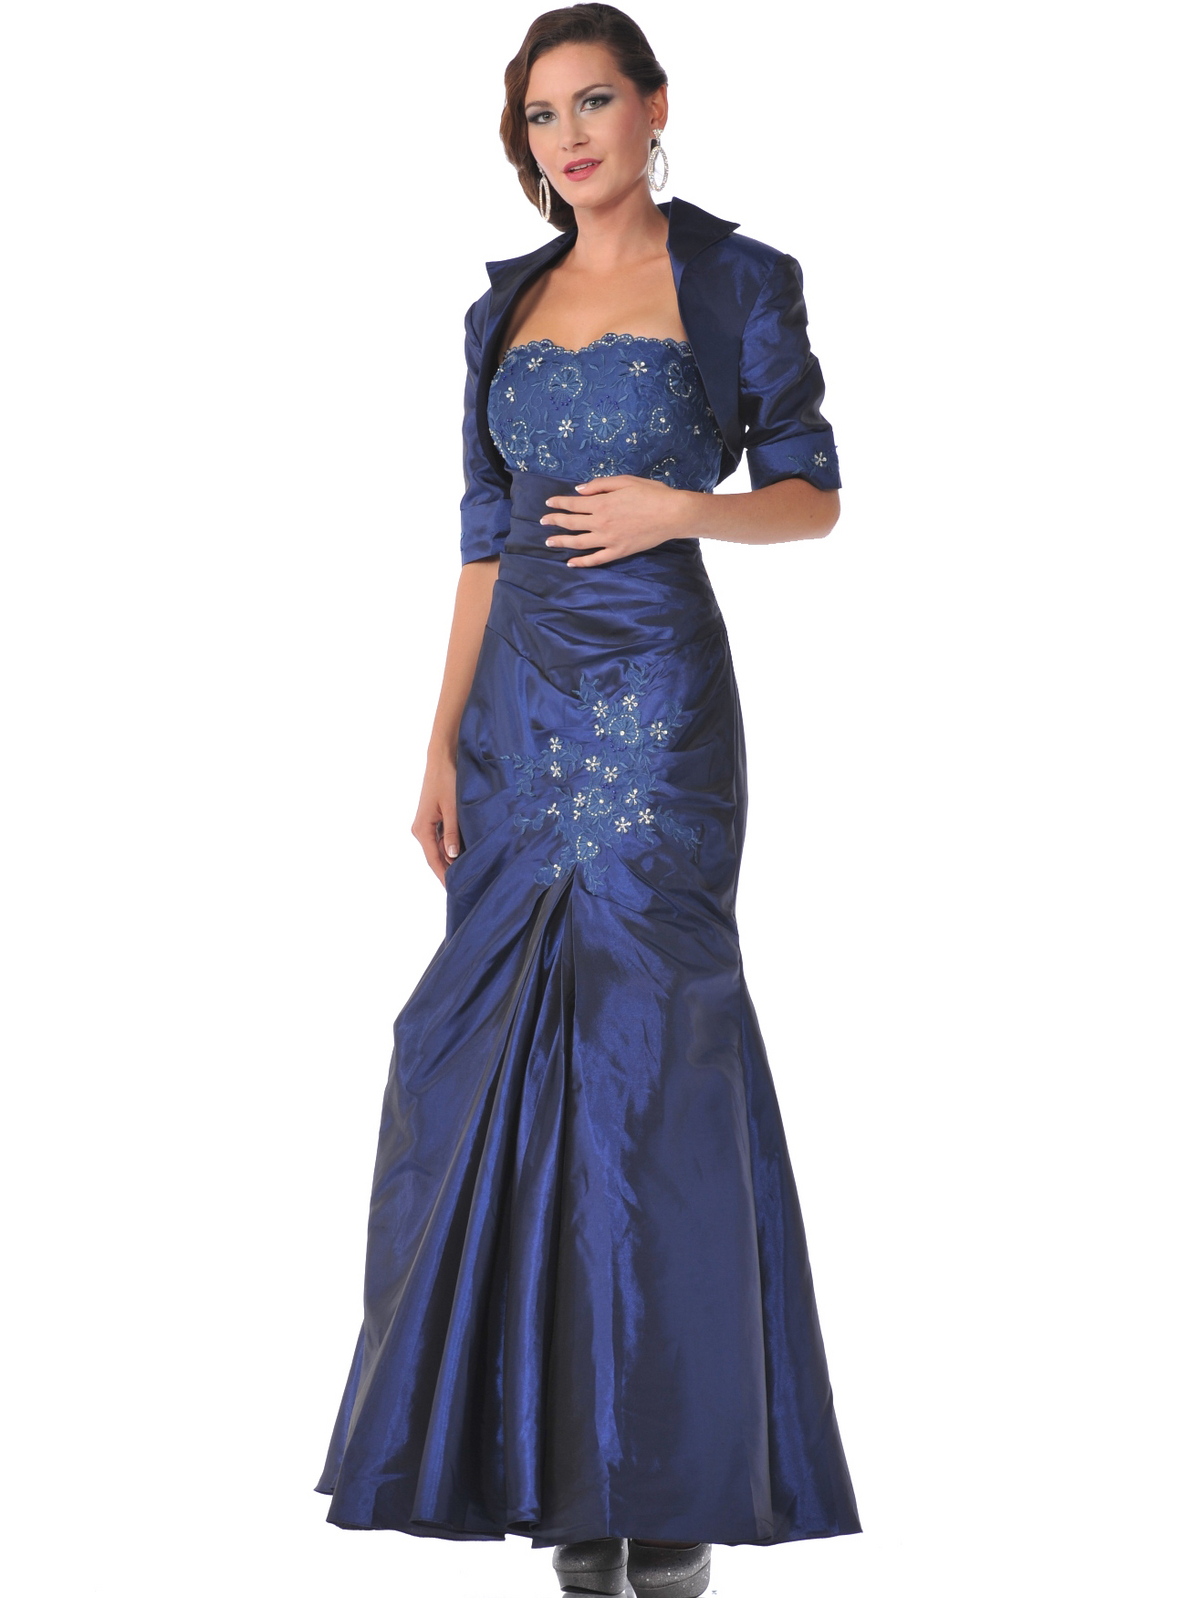 Silver Royalblue Evening Dresses Prom Dresses Cheap